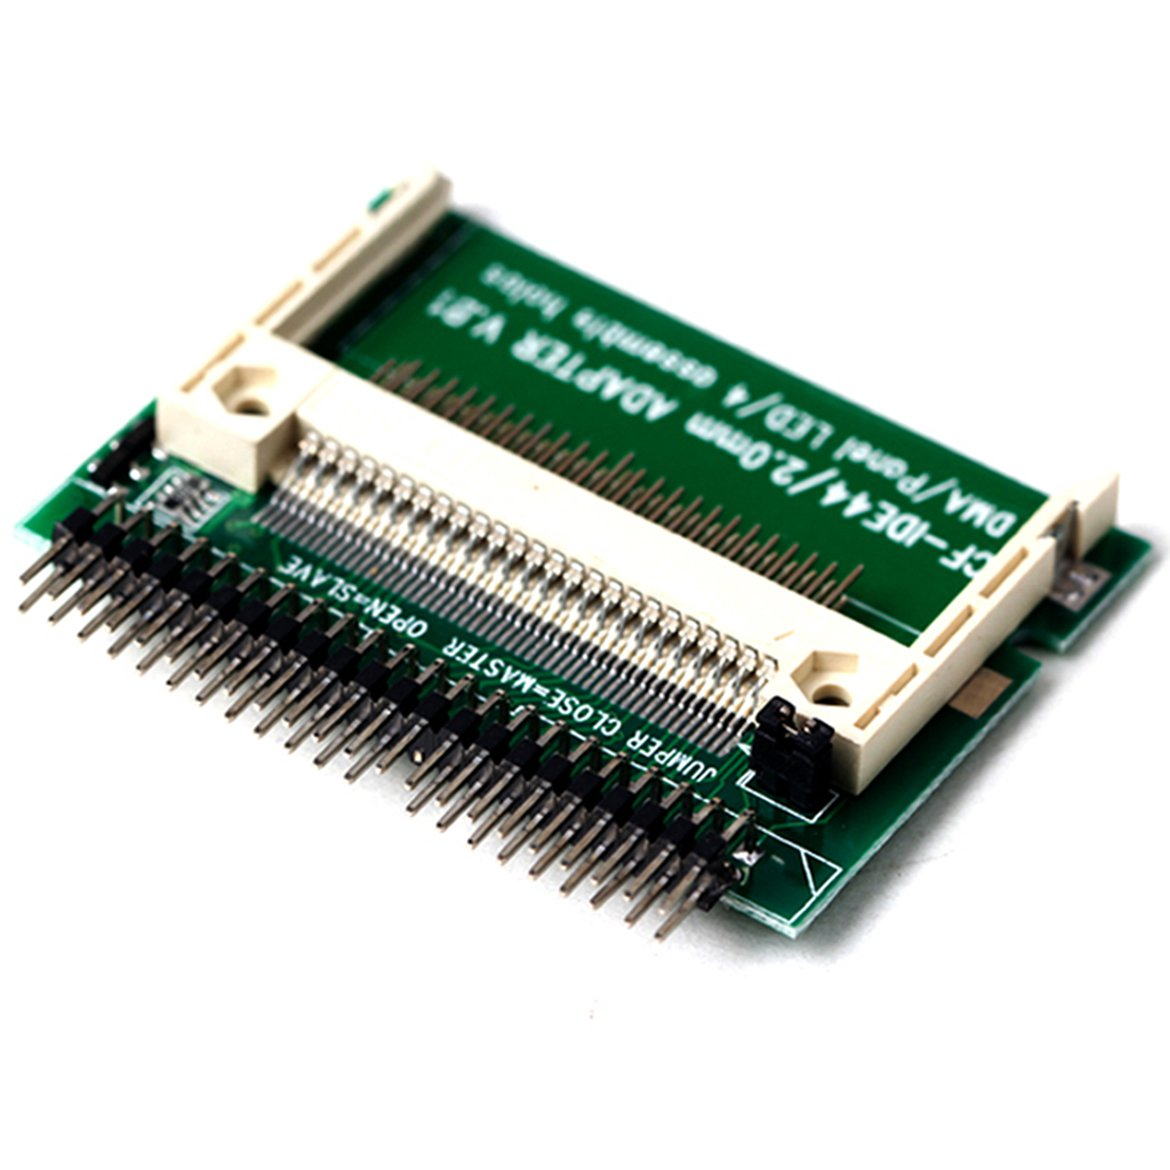 2019 New IDE 44 Pin Male to CF Compact Flash Male Adapter Connector-in Computer Cables & Connectors from Computer & Office